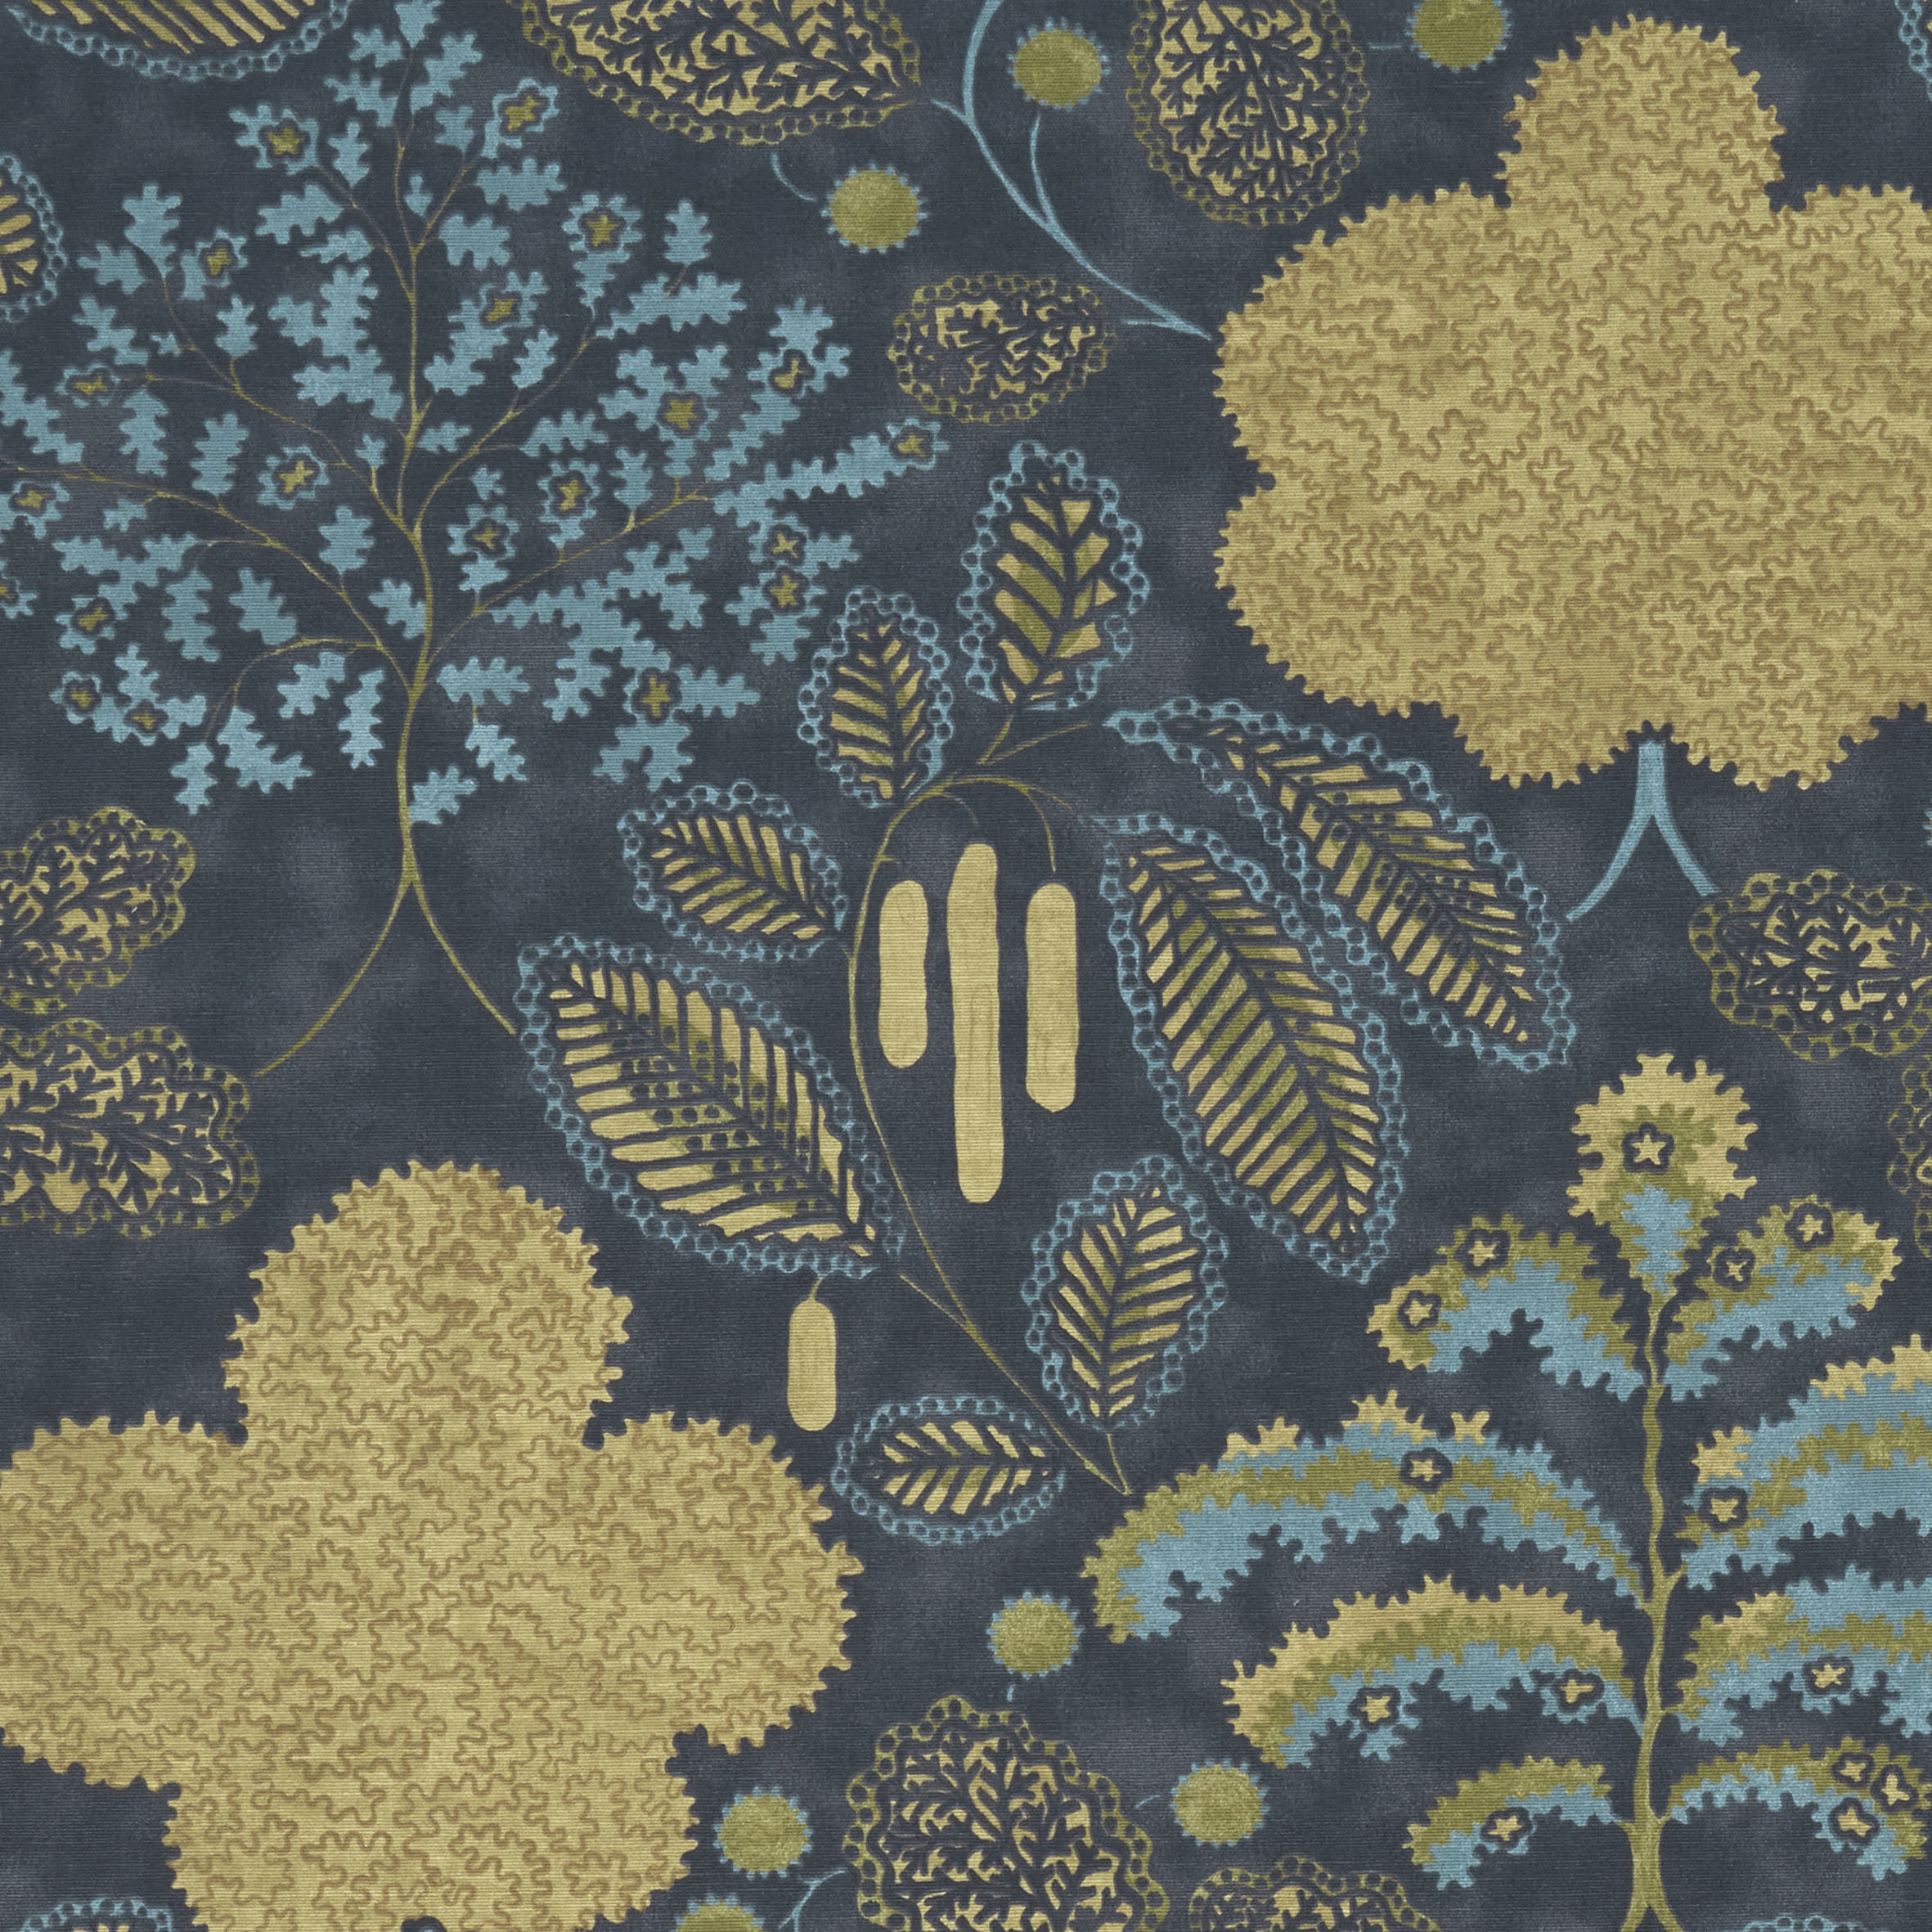 Close up of teal and gold leaf patterned fabric sample.